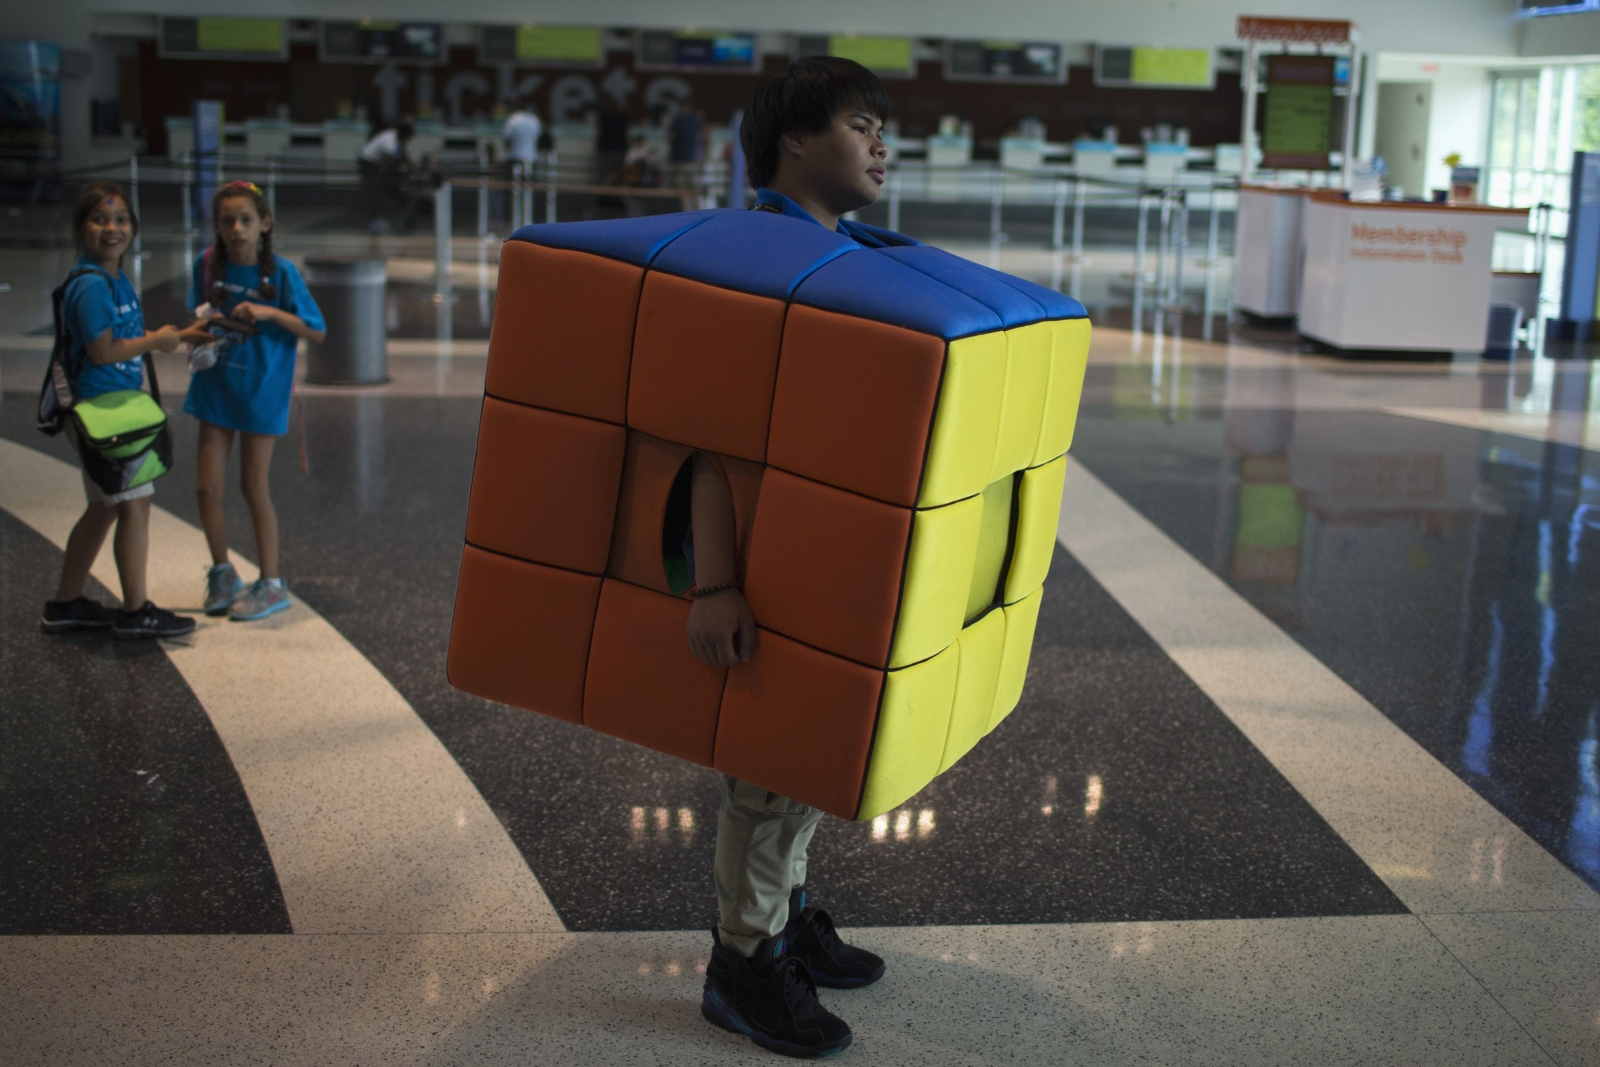 Volunteer Dressed as Rubiks Cube